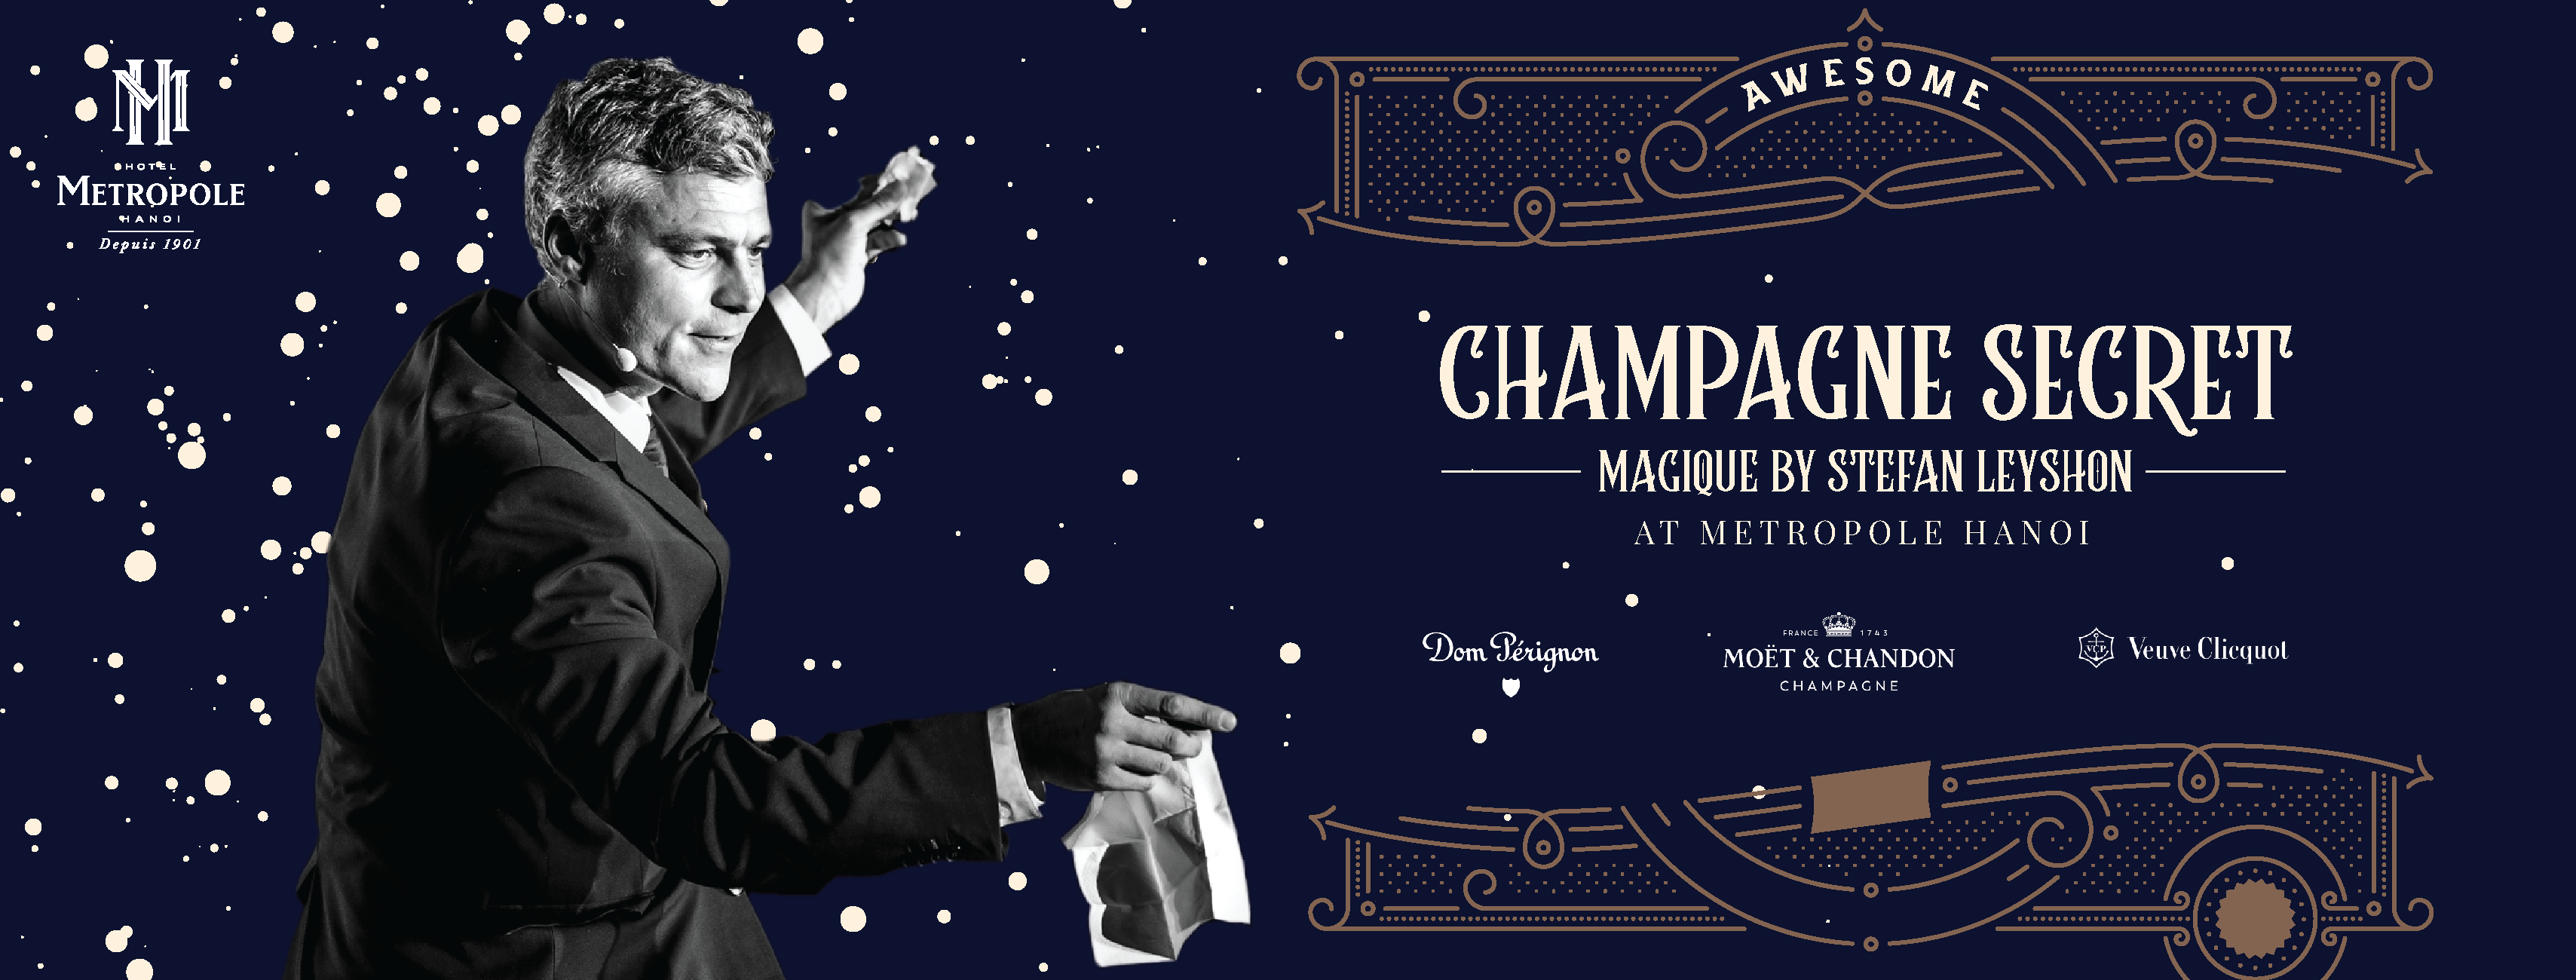 champagne-secret-magique-by-stefan-leyshon